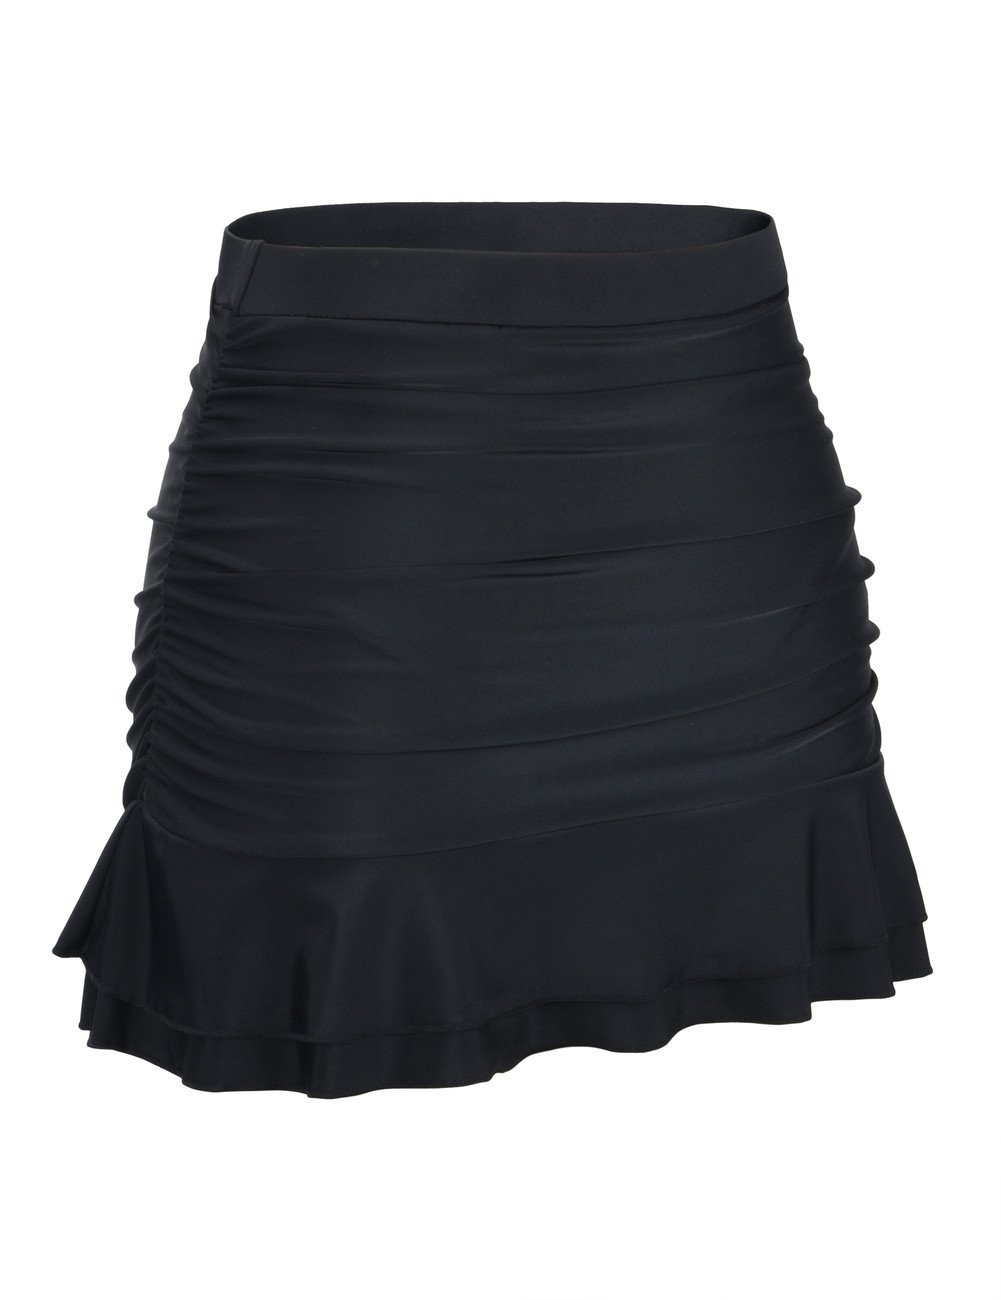 Hilor Women's Skirted Bikini Bottom High Waisted Shirred Swim Bottom Ruffle Swim Skirt Black 10(fits 6) by Hilor (Image #2)